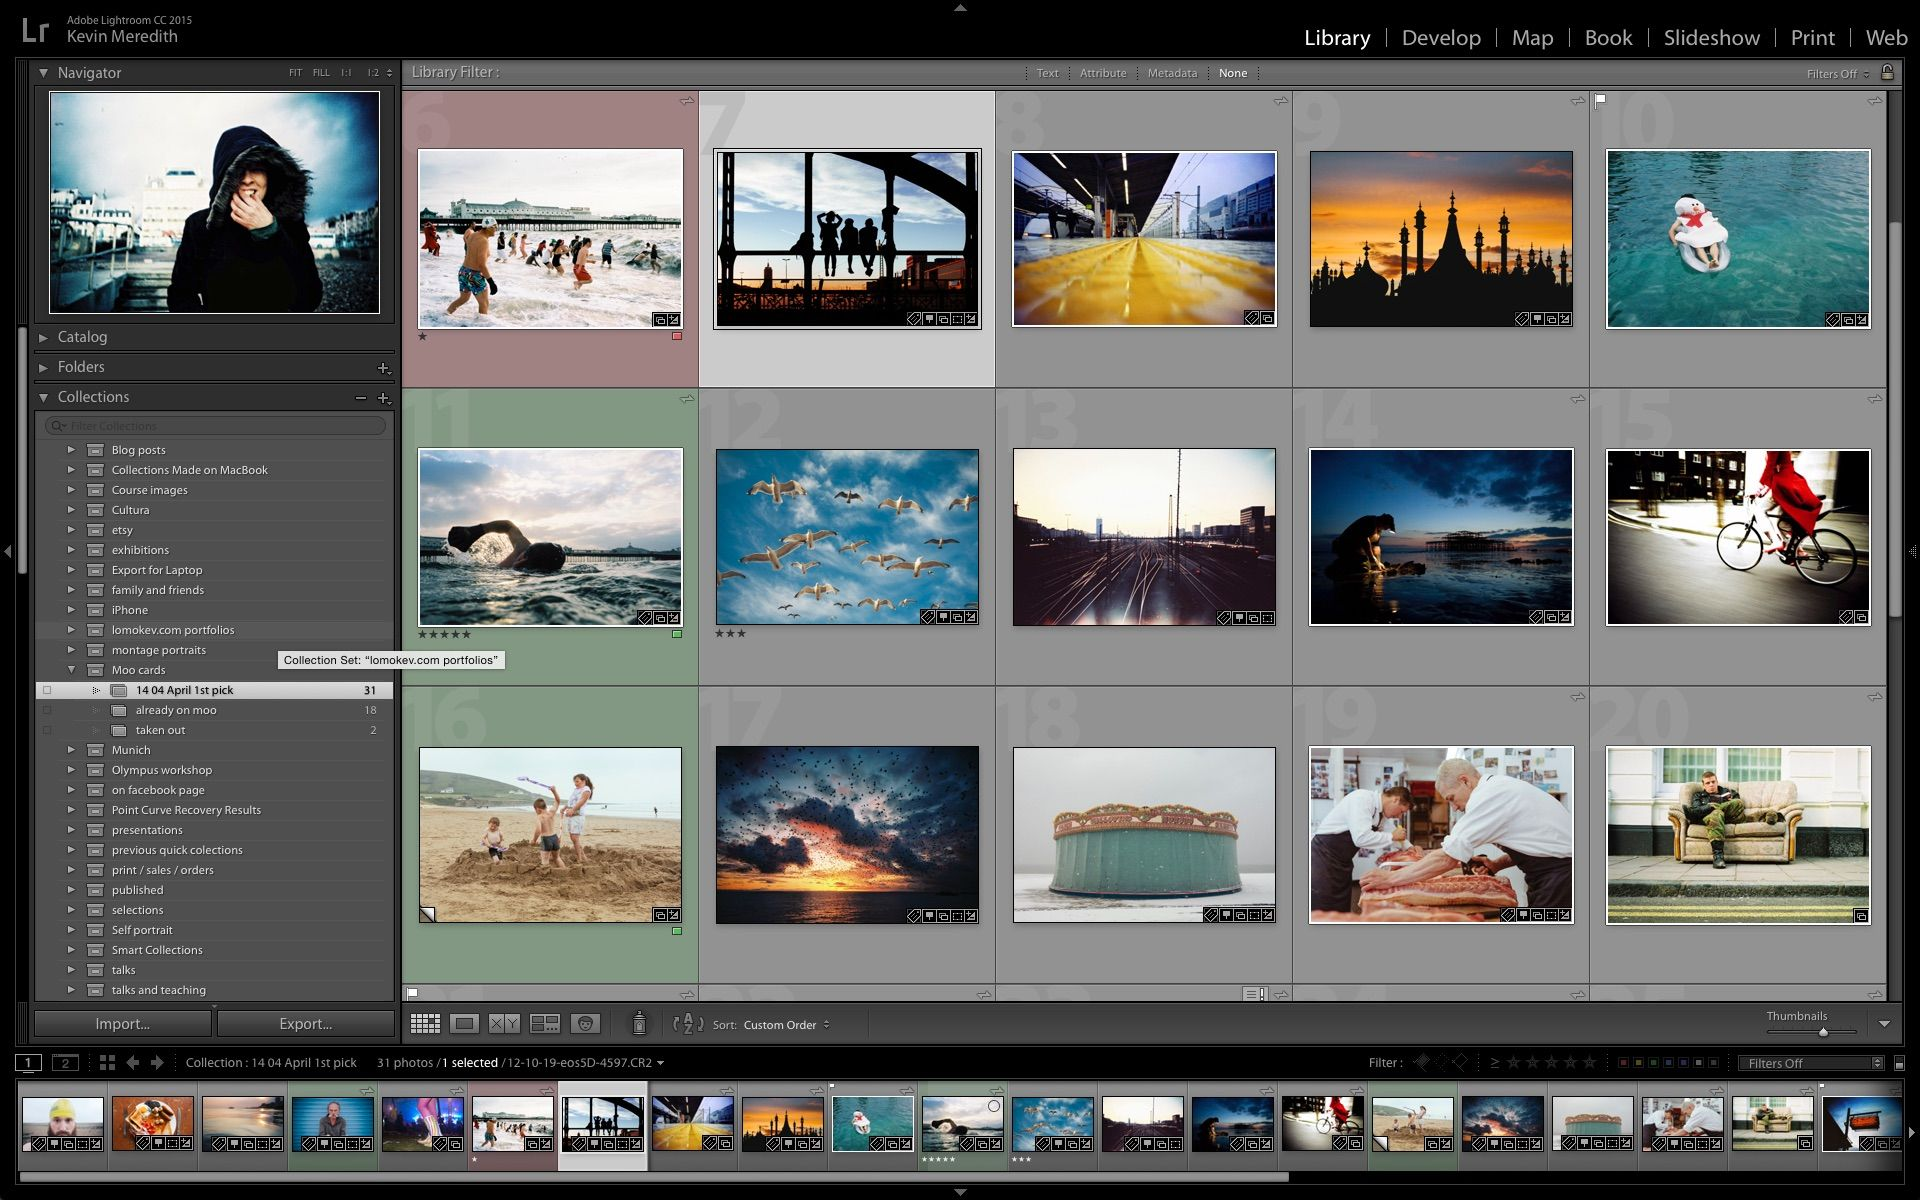 9 Lightroom tips. Tips on things you might not know about: Changing Crop overlay, Balancing exposures, Auto Advance, Toggling side bars and more.